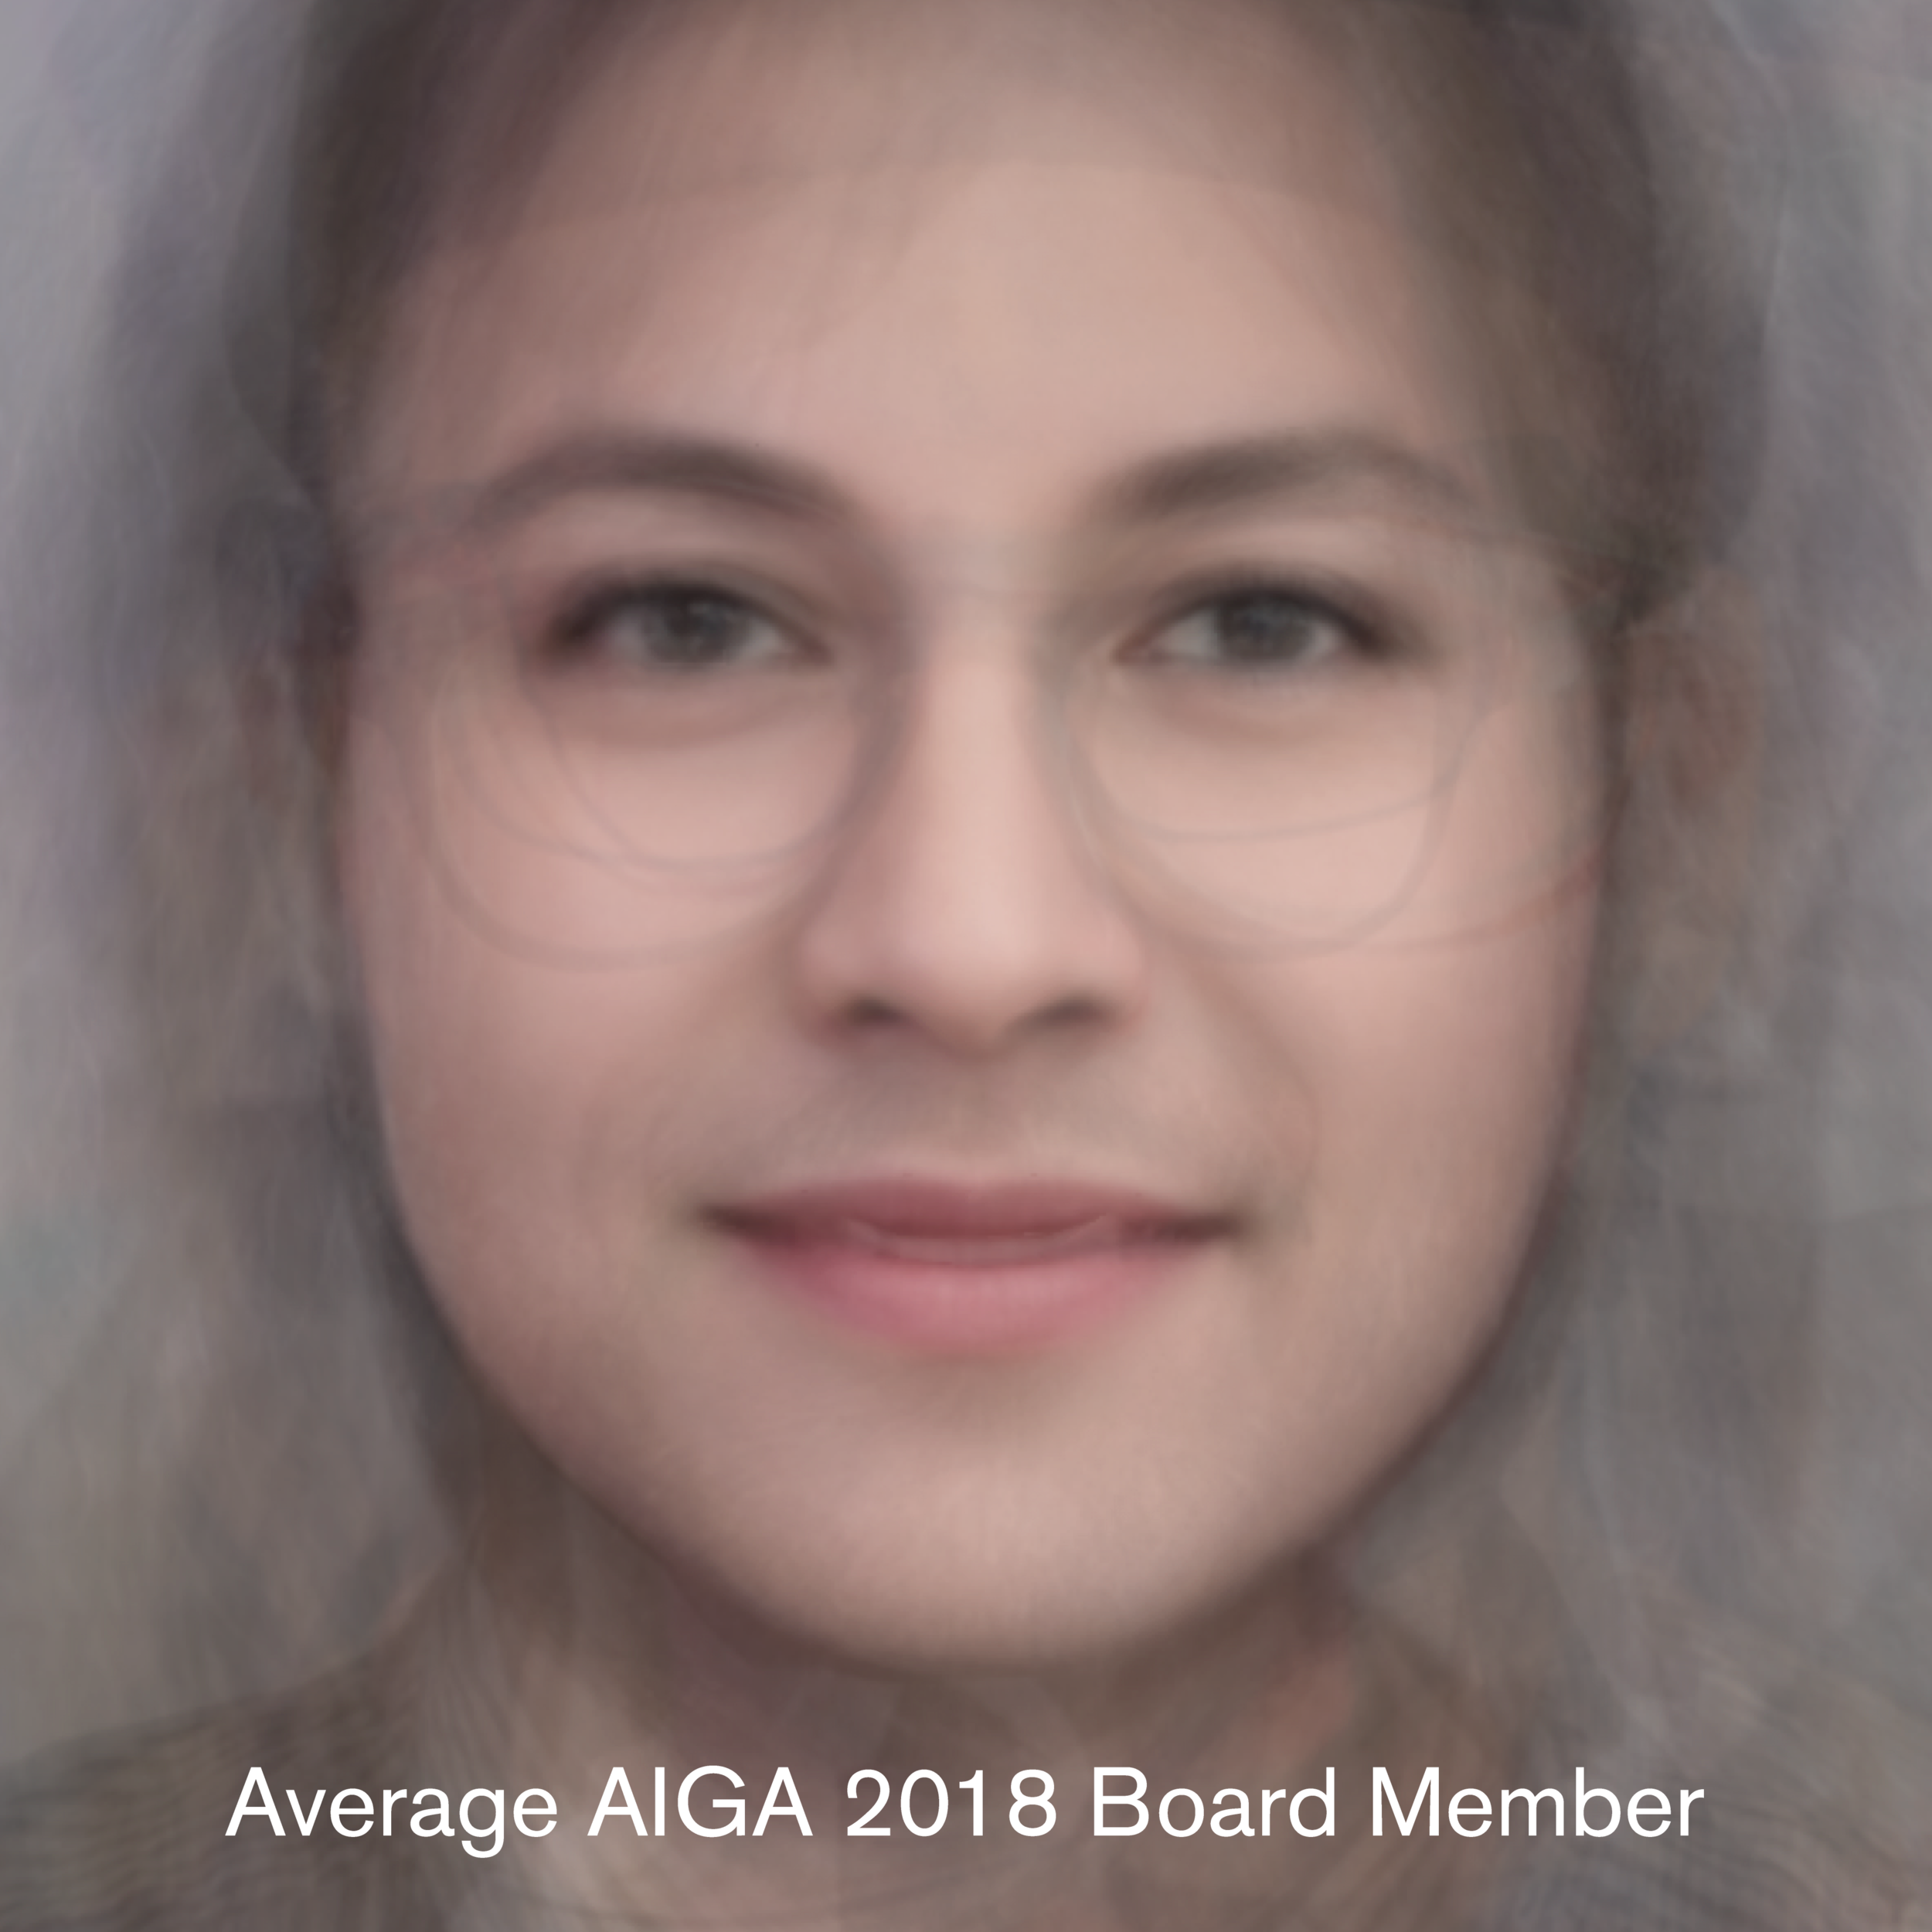 The source for this AIGANY Board member image is from AIGANY.org on October of 2018. It uses 23 front facing images of the board members and 1 image of staff.